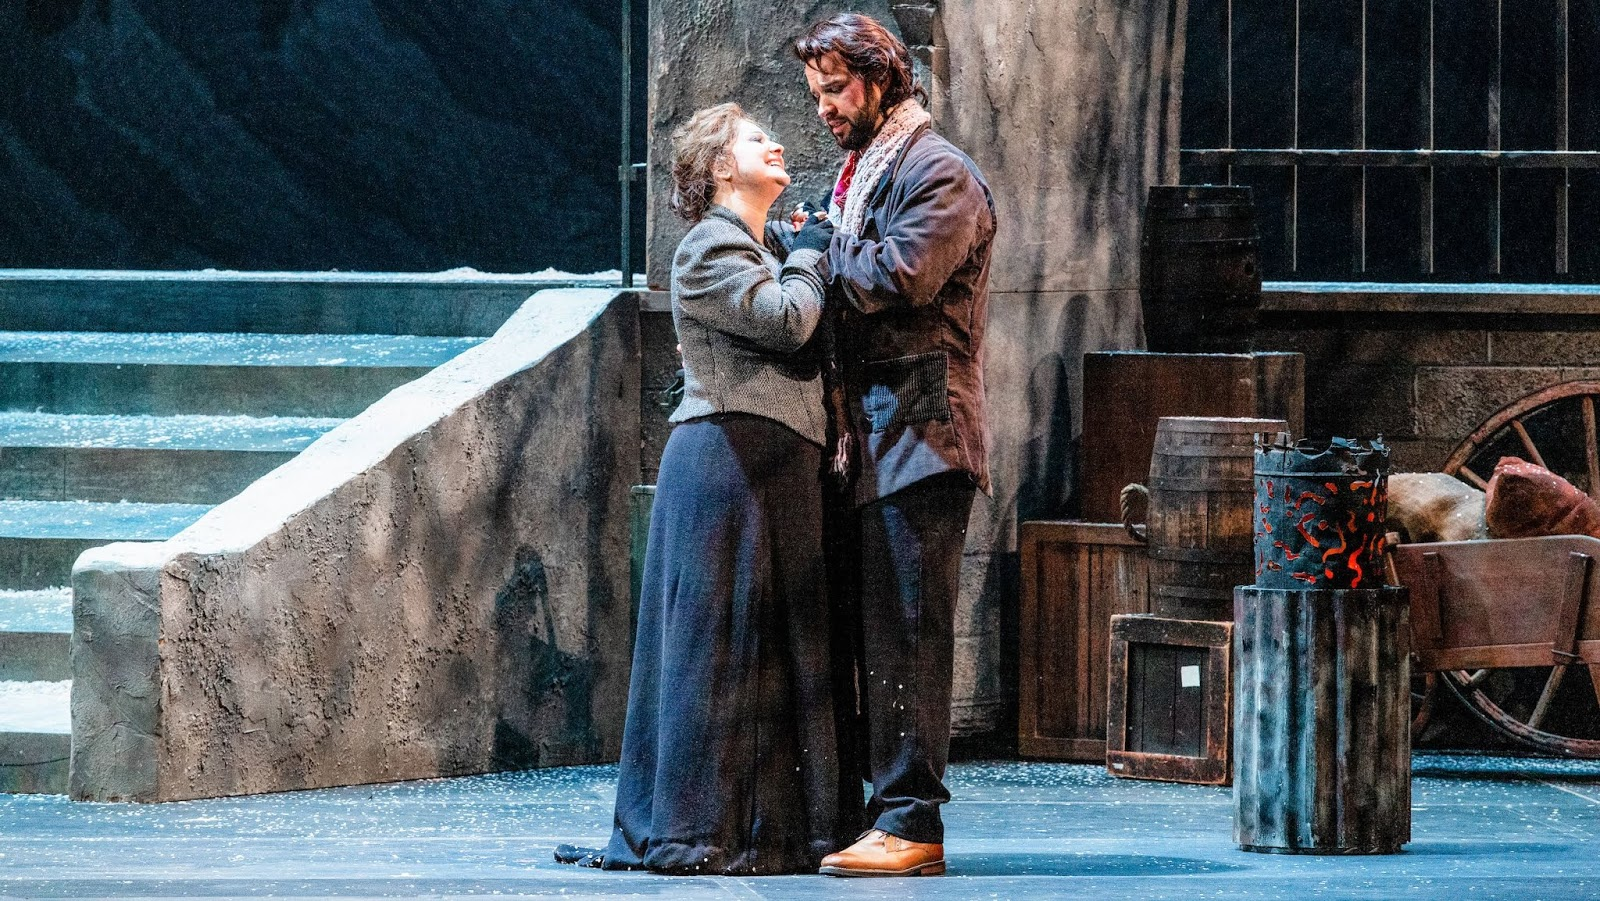 IN REVIEW: soprano STEFANNA KYBALOVA as Mimì (left) and tenor ADAM SMITH as Rodolfo (right) in Opera Carolina's January 2020 production of Giacomo Puccini's LA BOHÈME [Photograph by Mitchell Kearney, © by Opera Carolina]